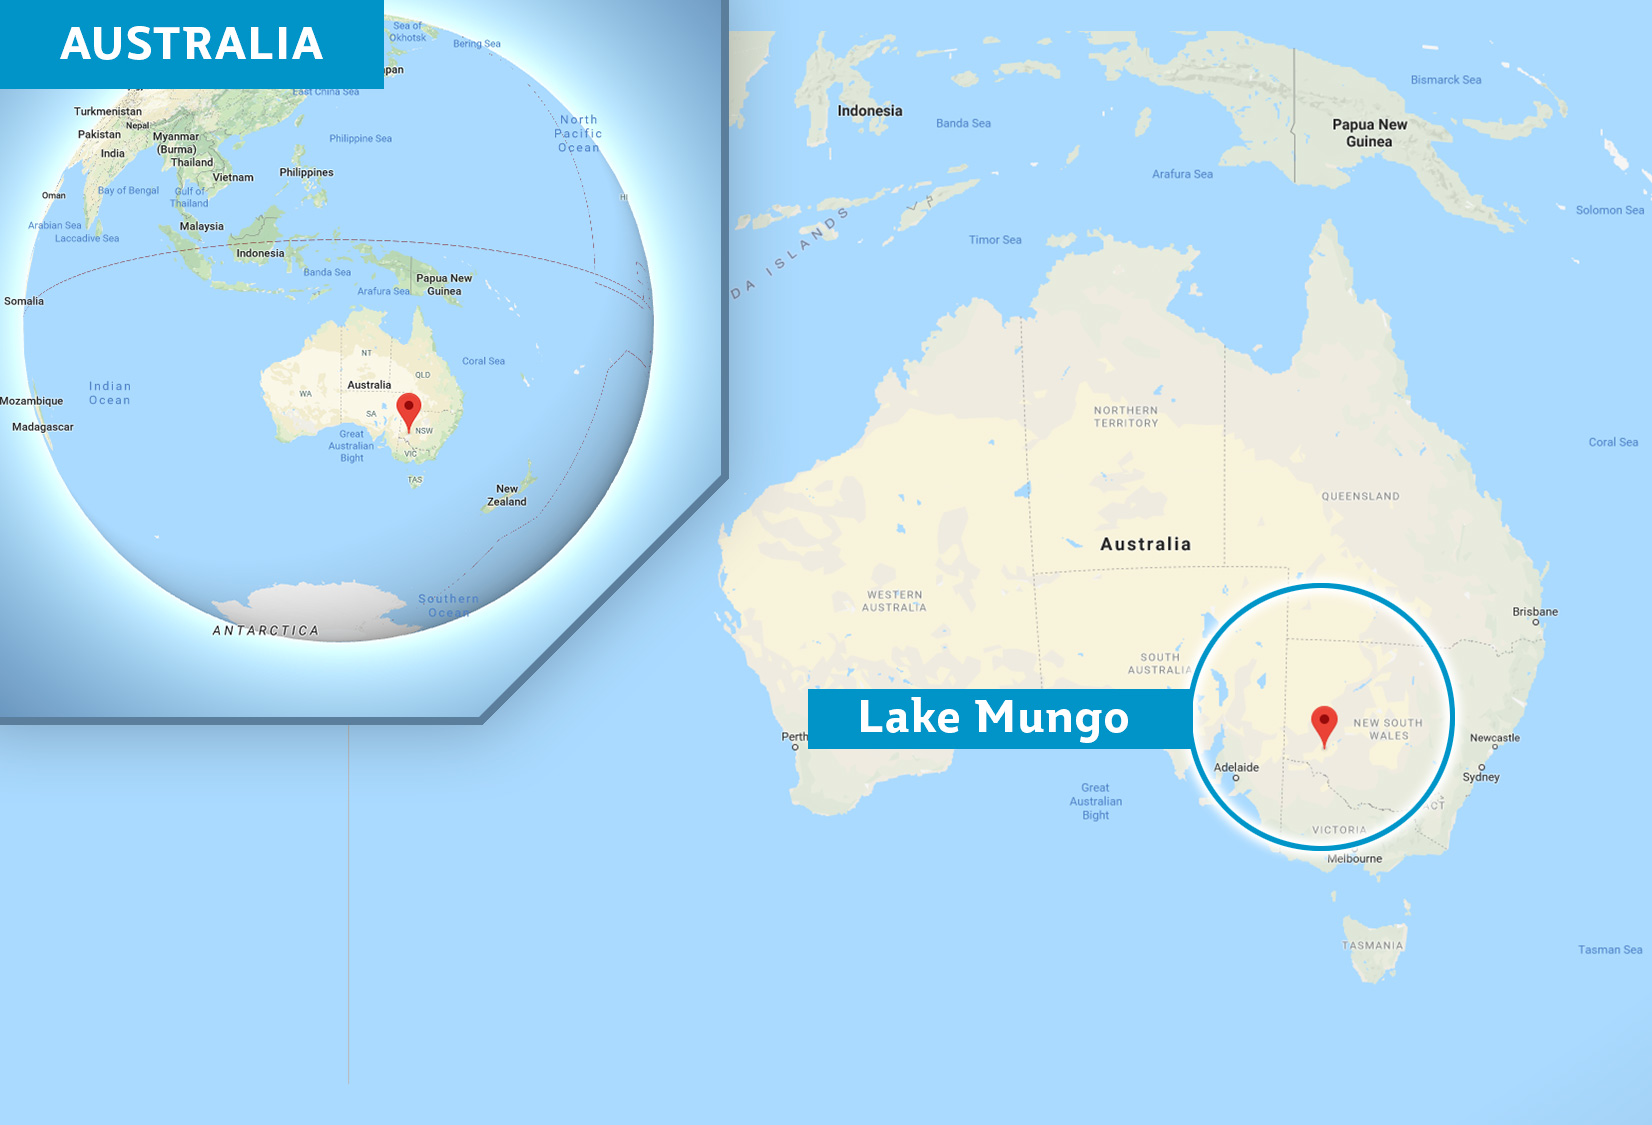 Map of Australia with a marker on Lake Mungo